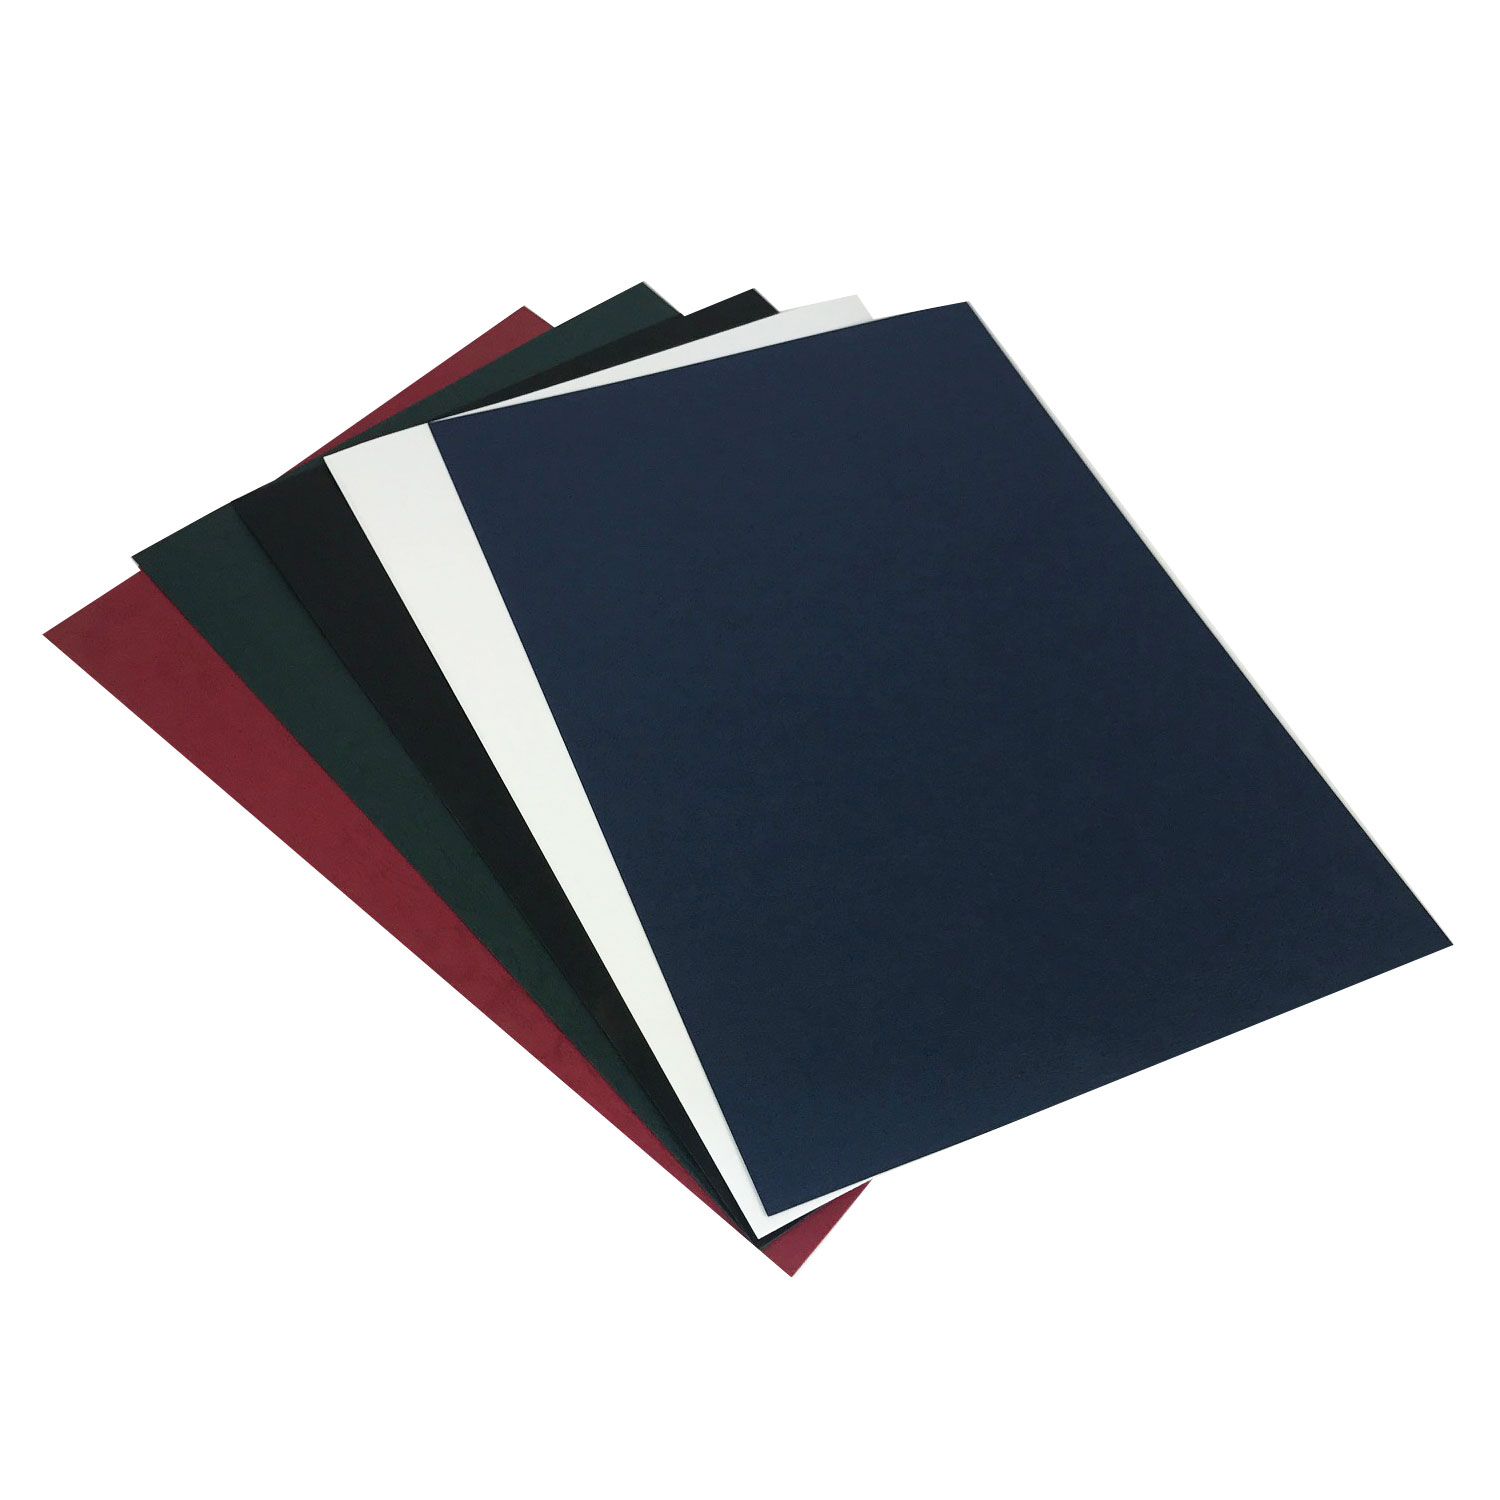 Fastback Black Binding Covers 400-401 (100)